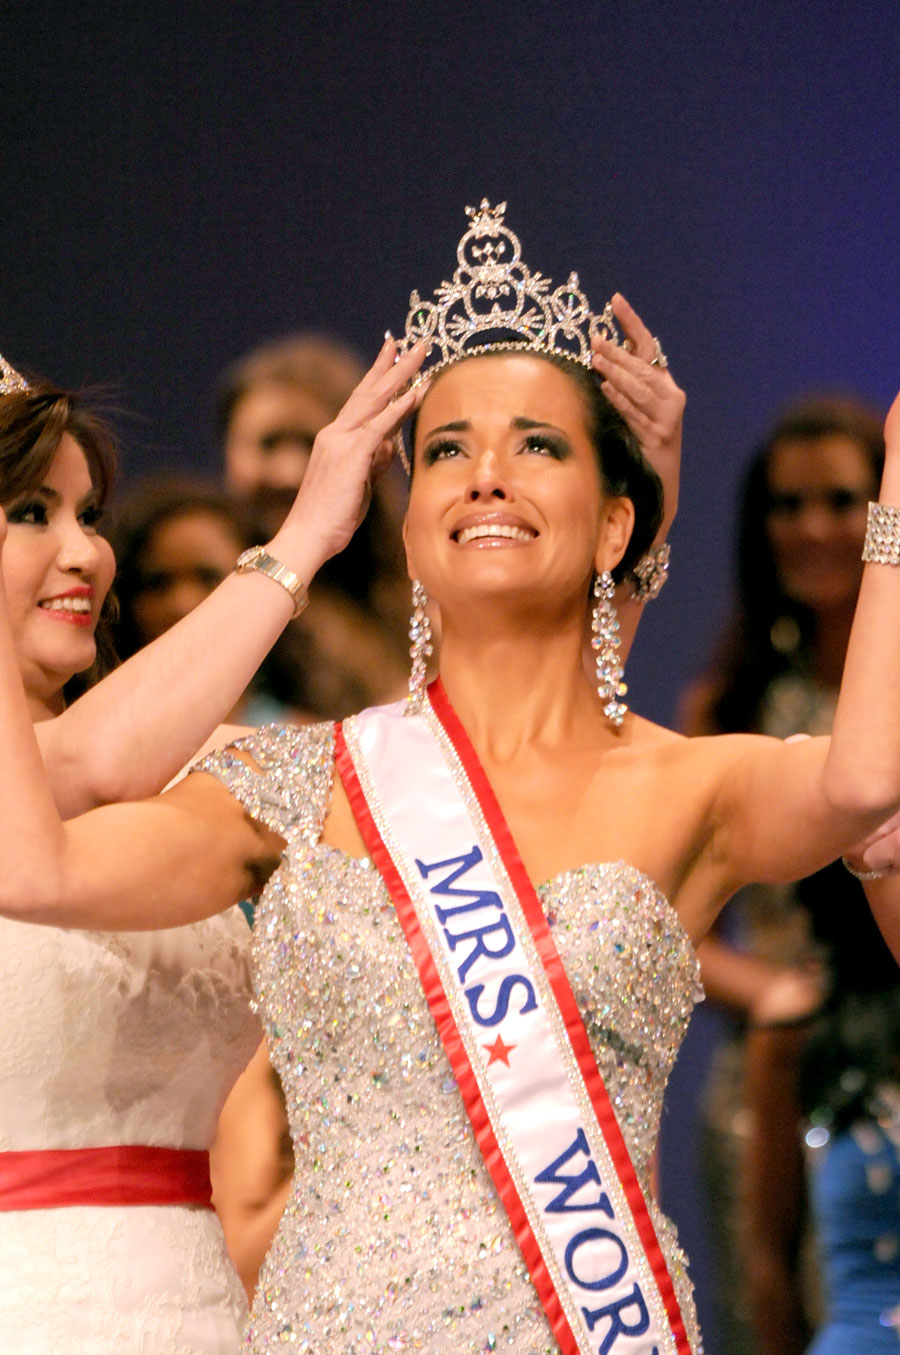 Lurfriu during her crowning moment as Mrs. World.